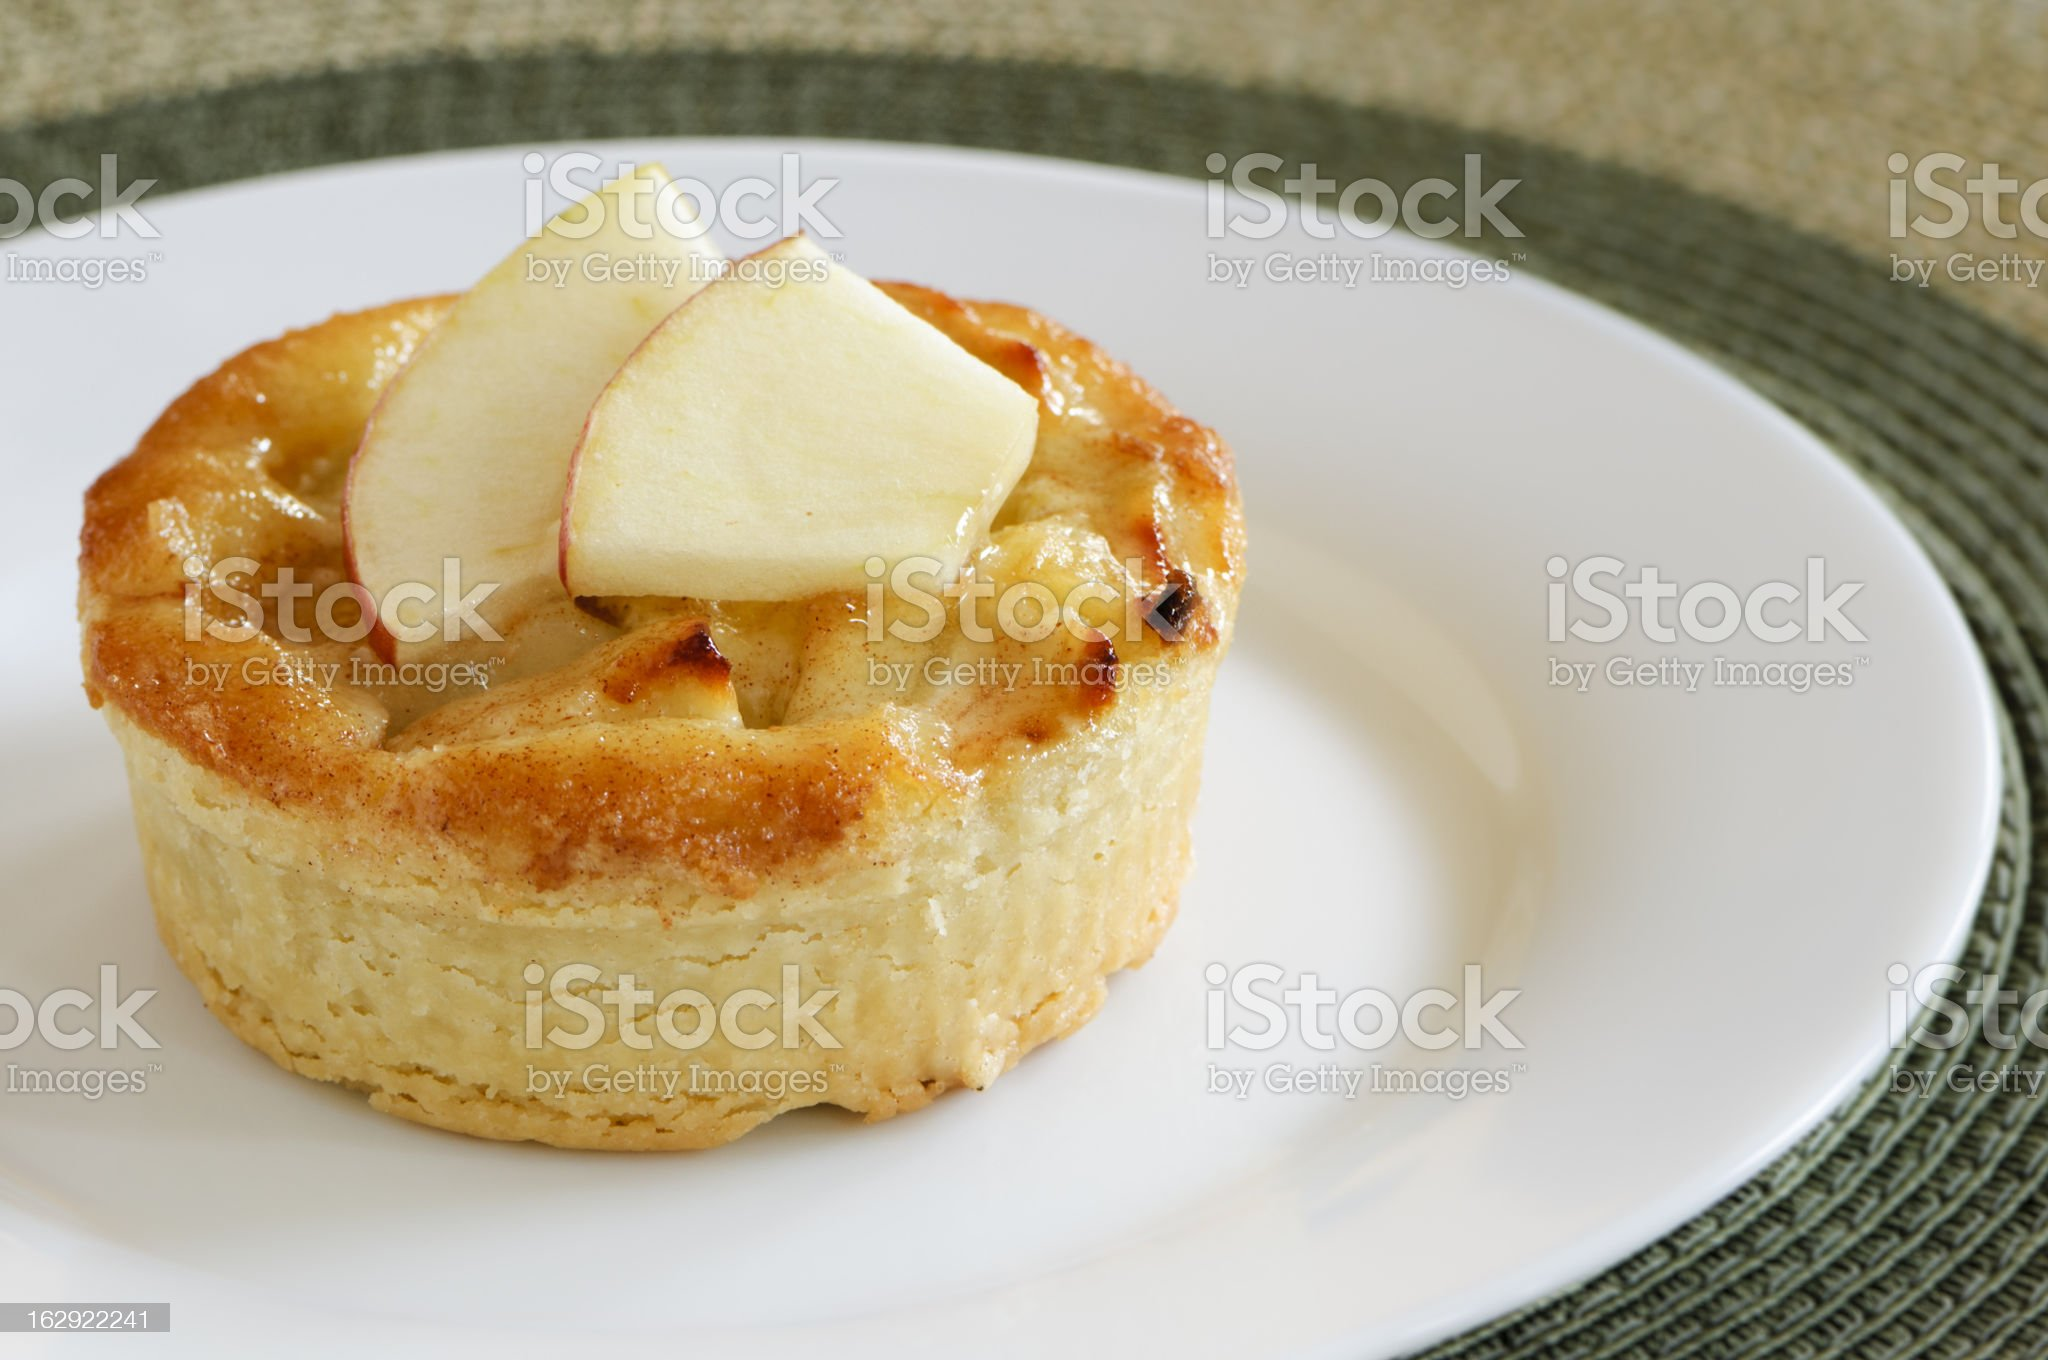 Almond pastry with apple slices royalty-free stock photo